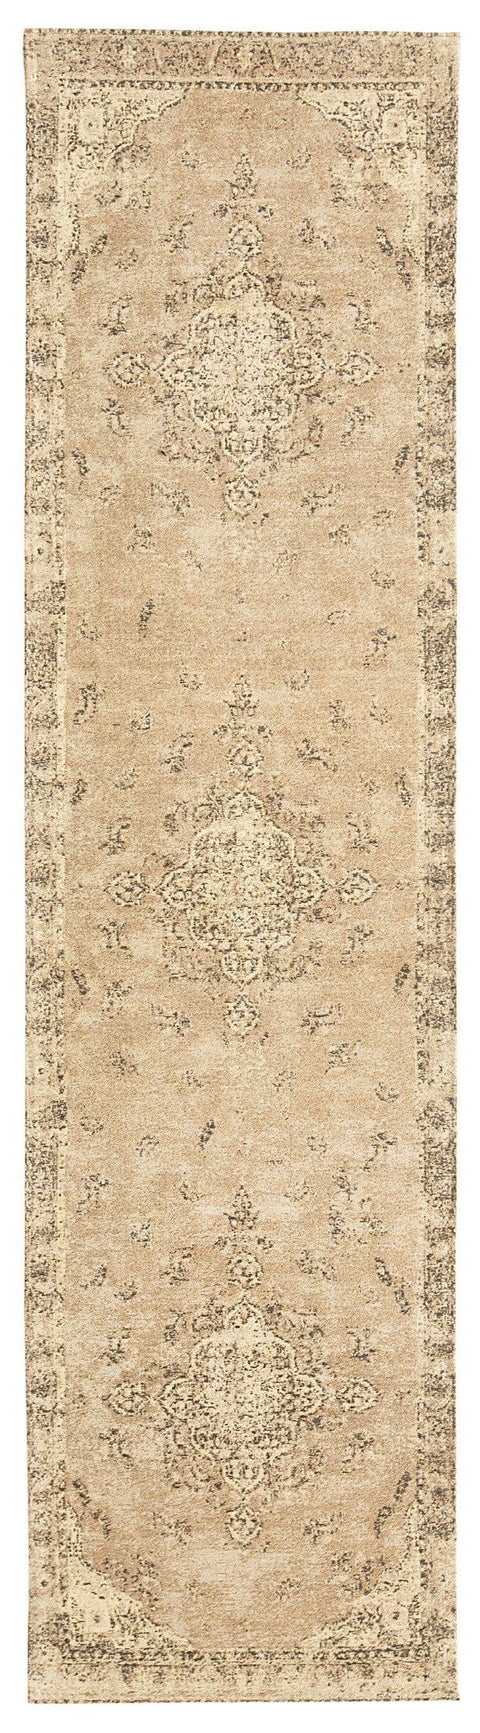 Sadie Coral Peach Turkish Style Distressed Runner Rug